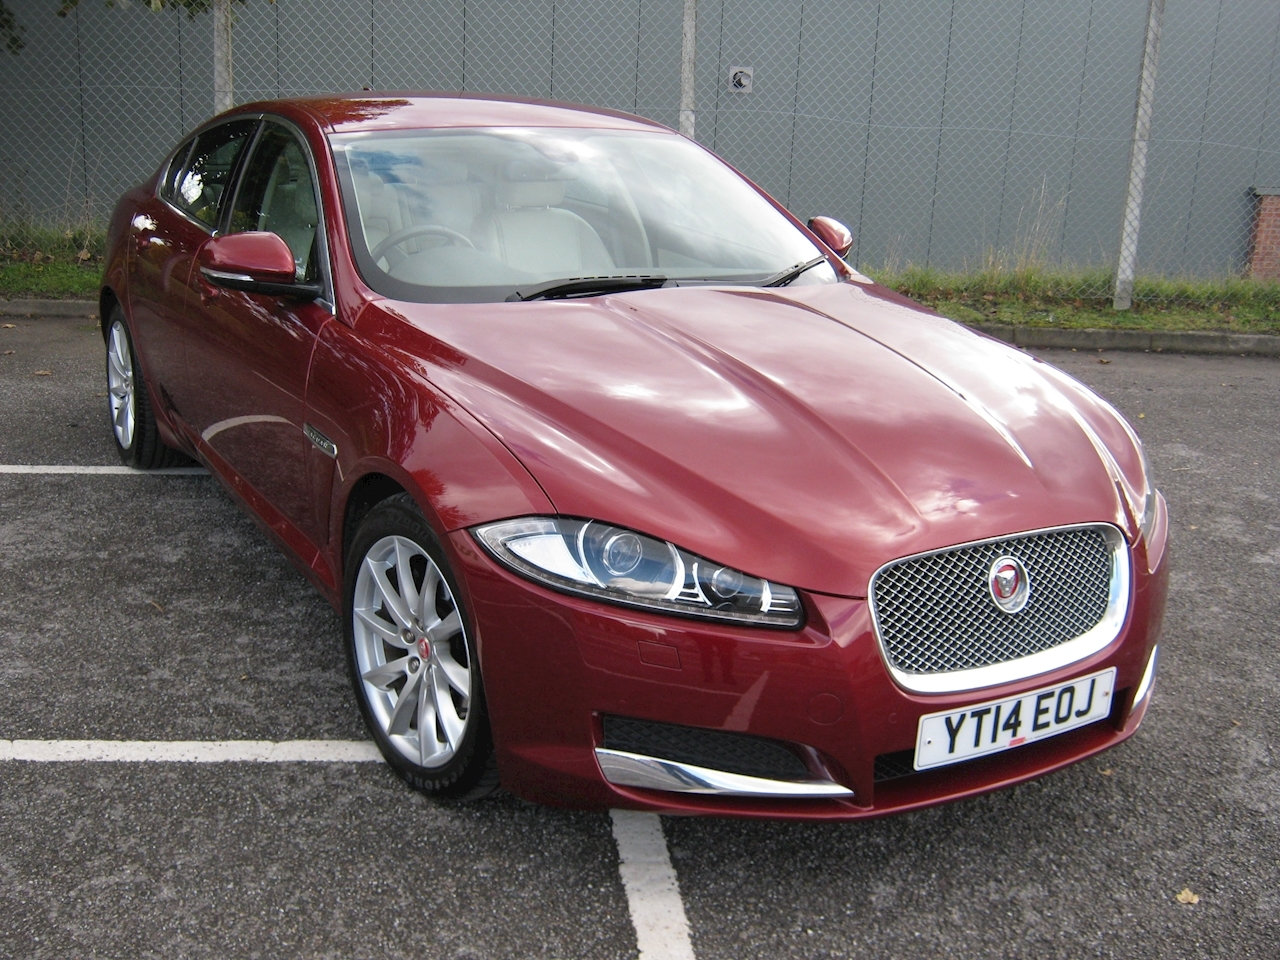 Jaguar XF Premium Luxury Saloon 2.2 Automatic Diesel